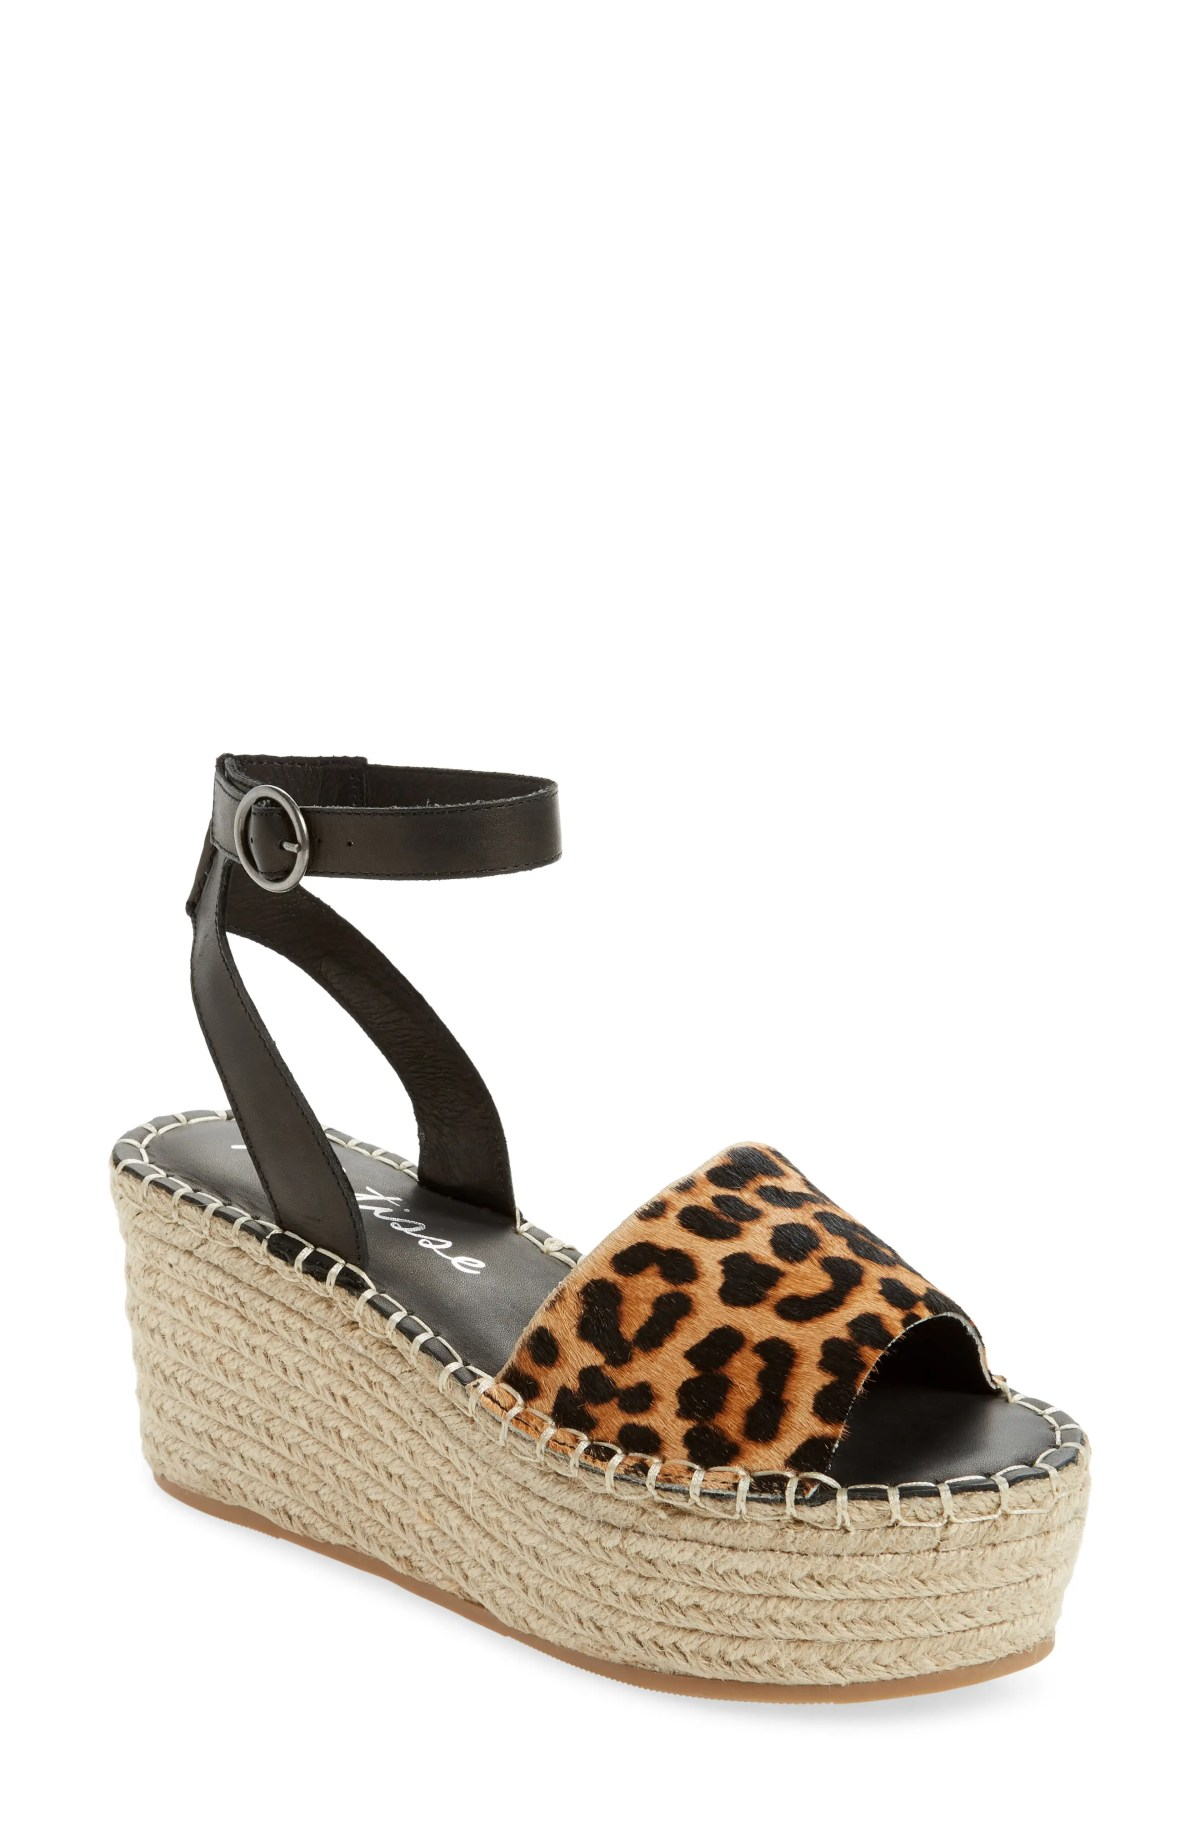 MATISSE Trapeze Ankle Strap Platform Sandal, Main, color, BLACK CALF HAIR